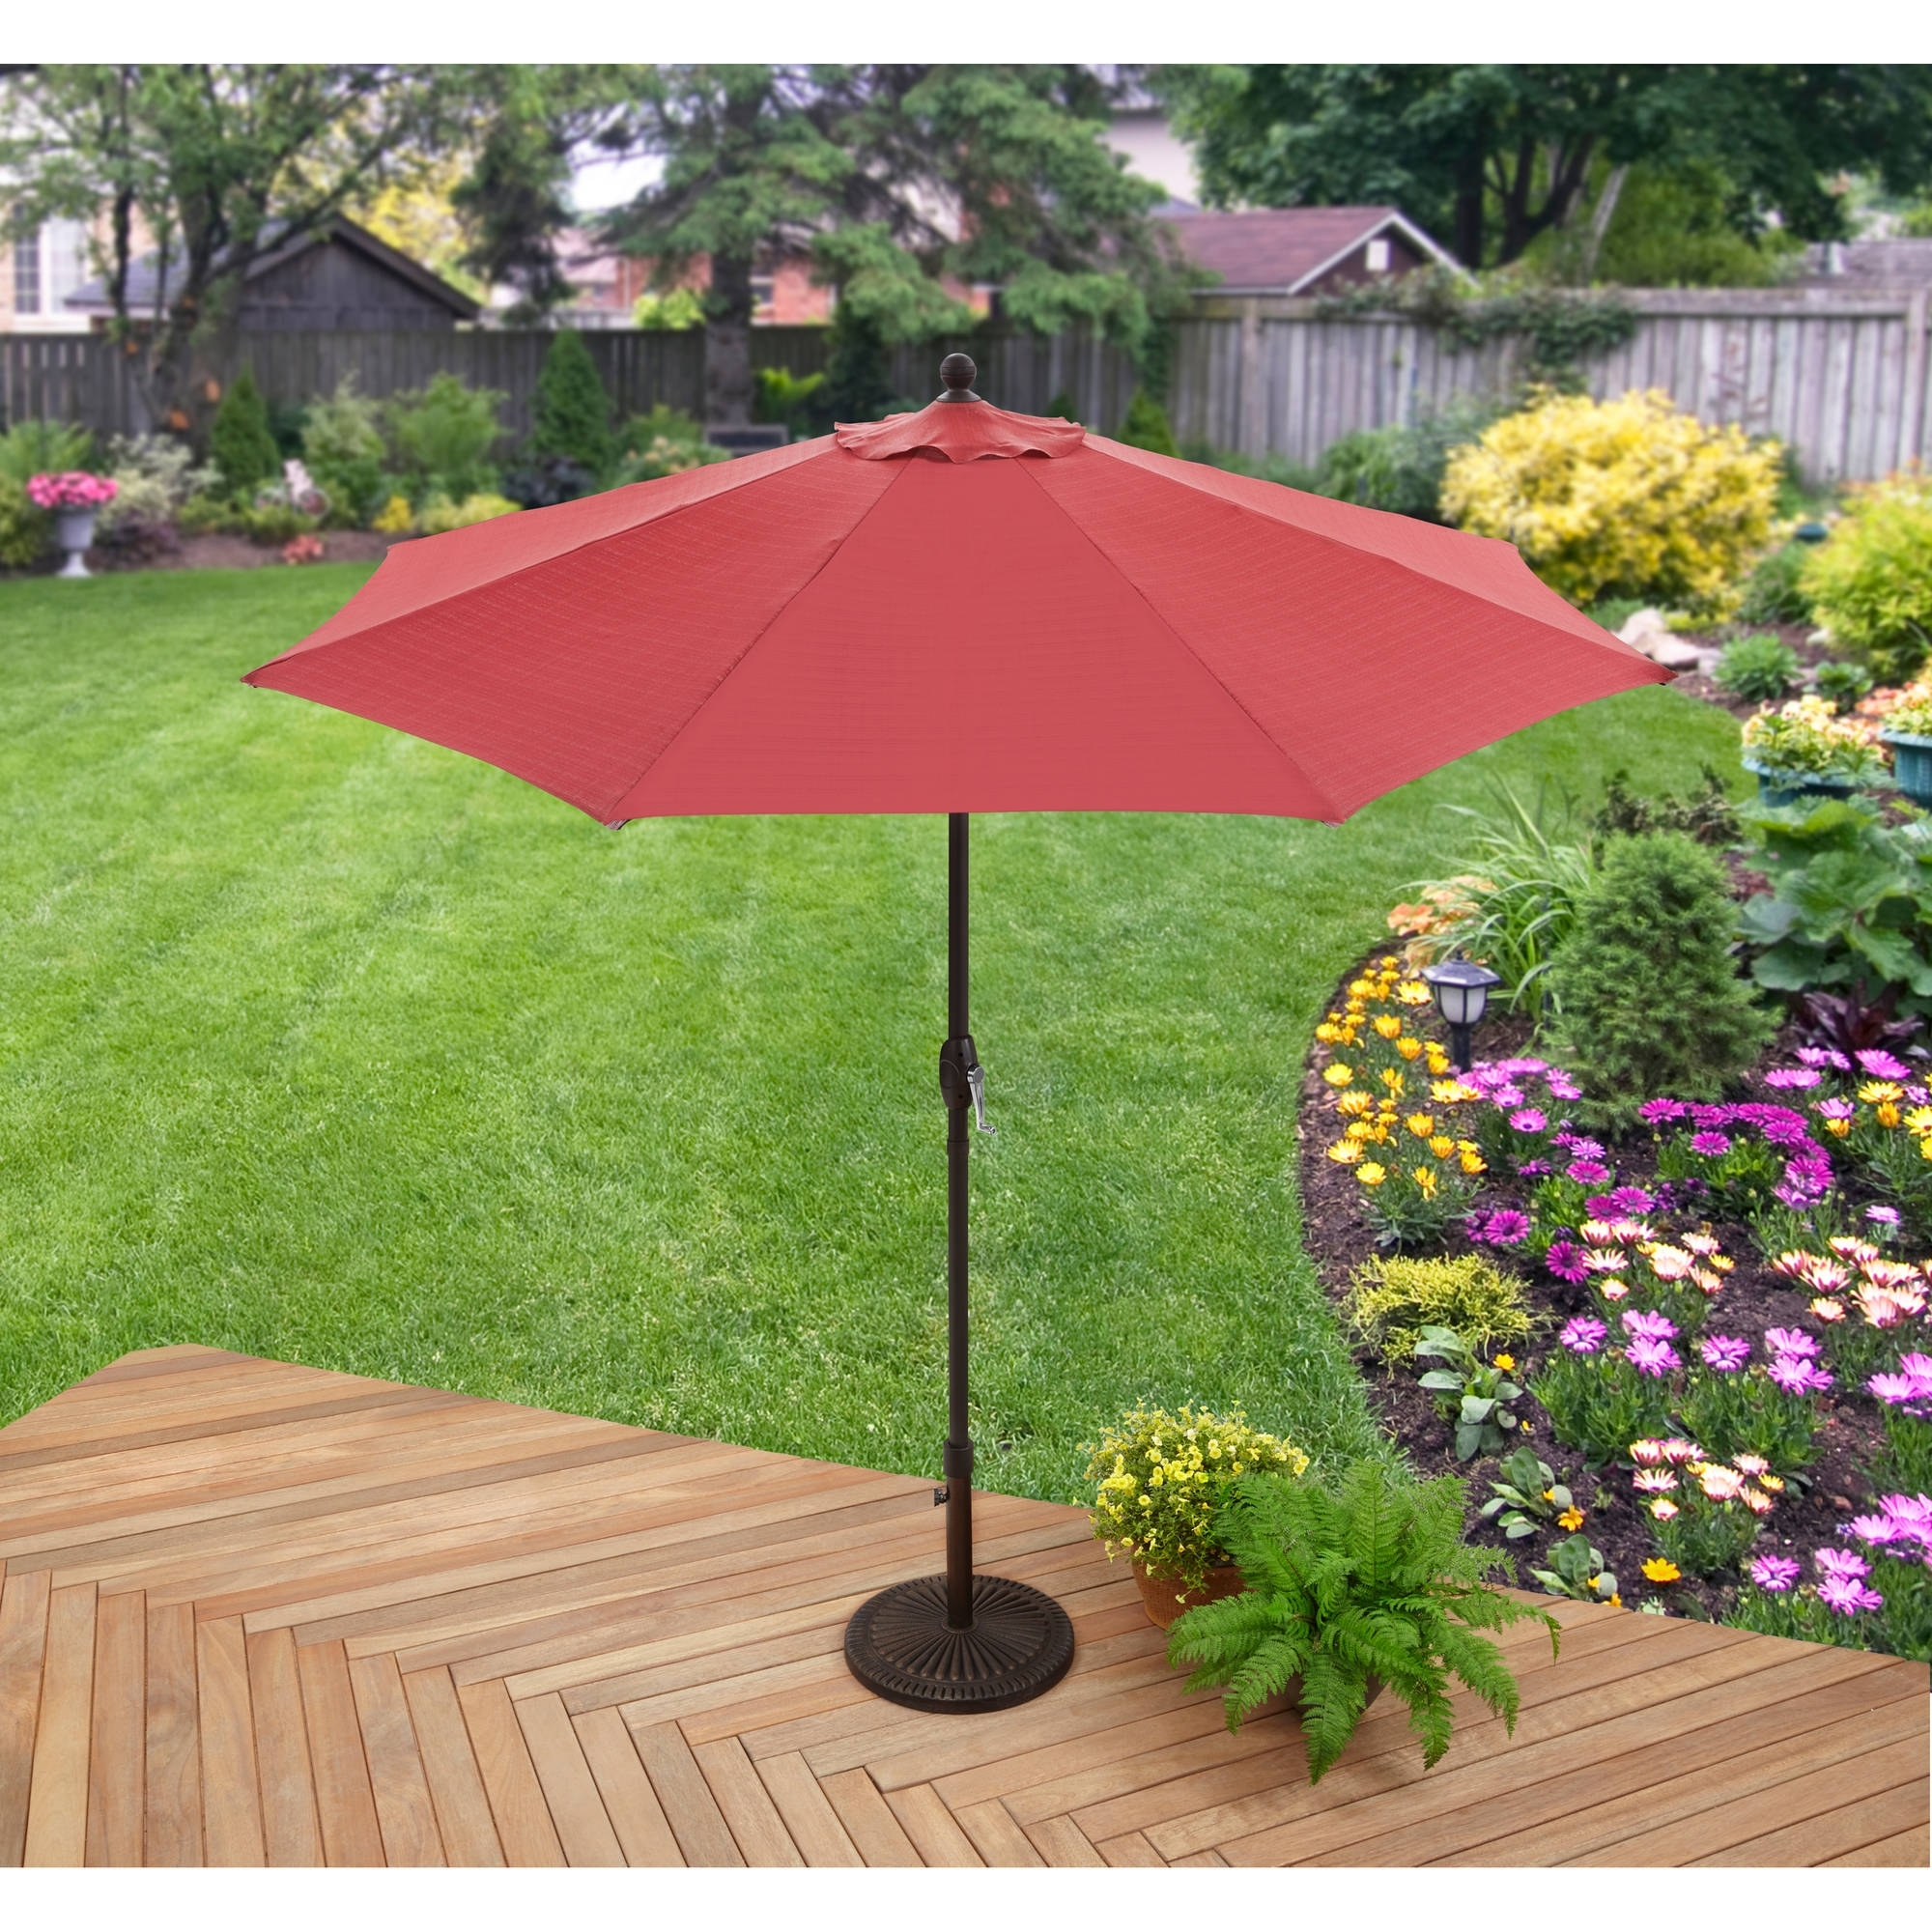 Better Homes And Gardens 9' Market Umbrella, Red – Walmart For Newest Walmart Patio Umbrellas (View 2 of 20)